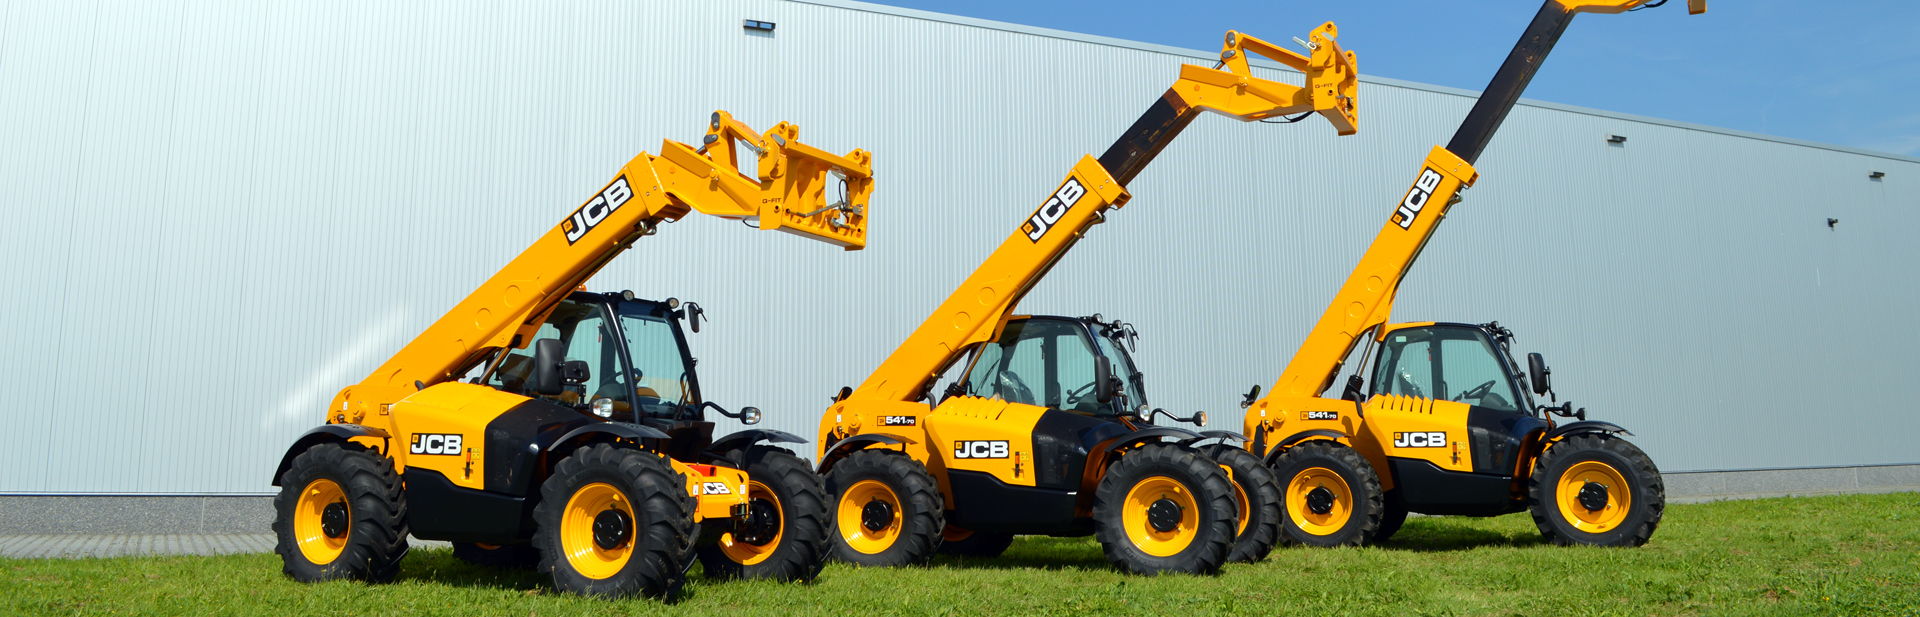 We are selling new and used agricultural equipment and compact construction machines worldwide